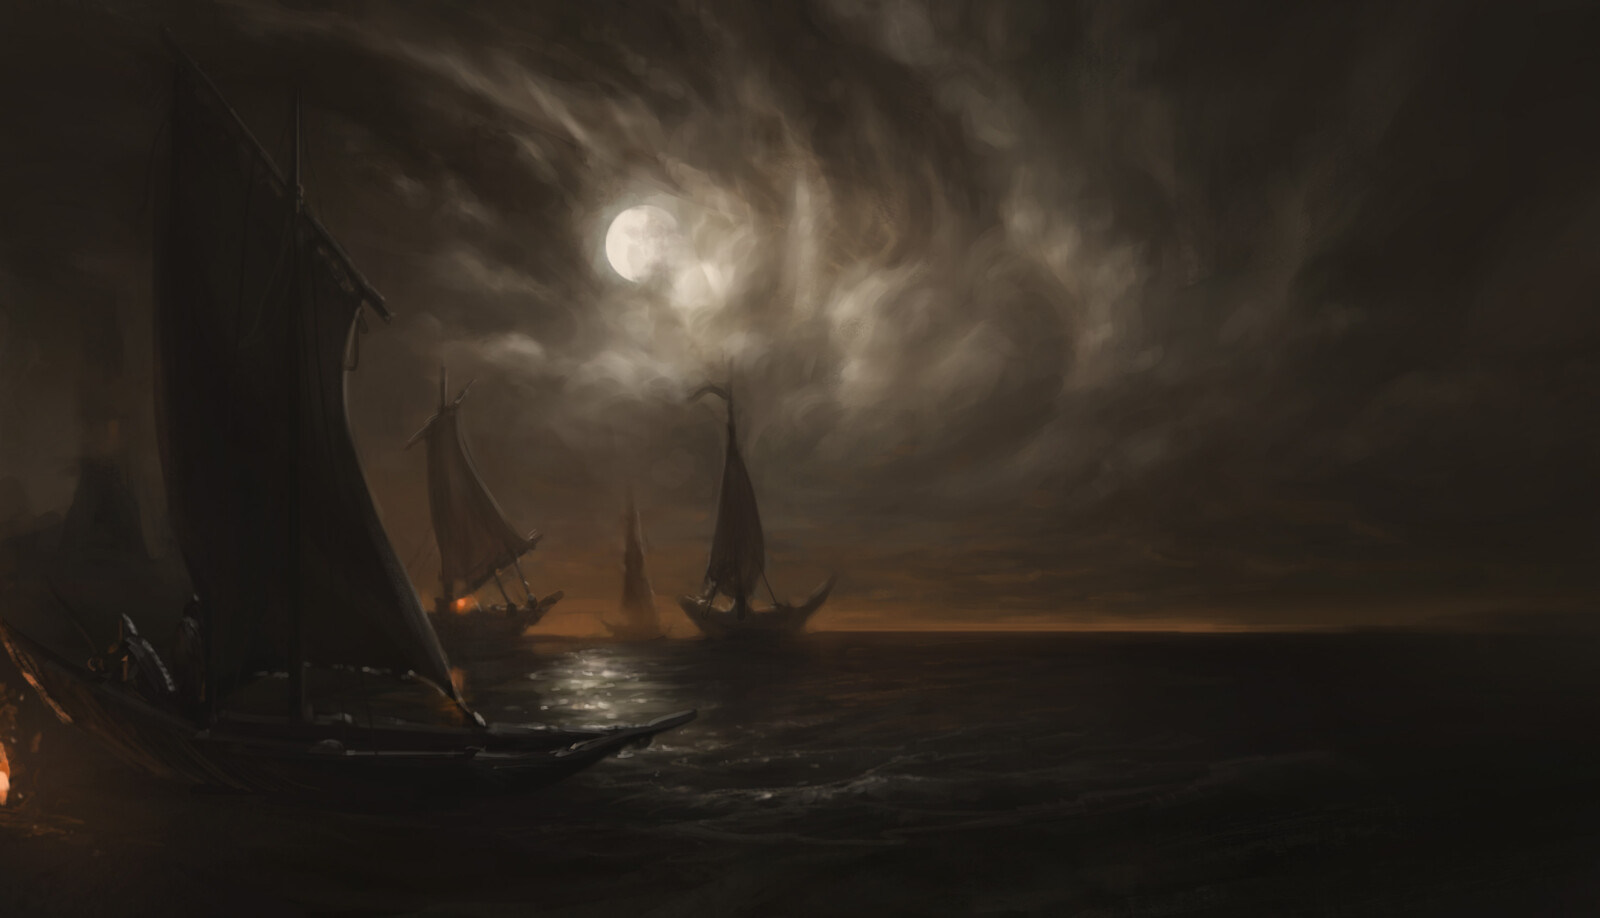 Night Sails